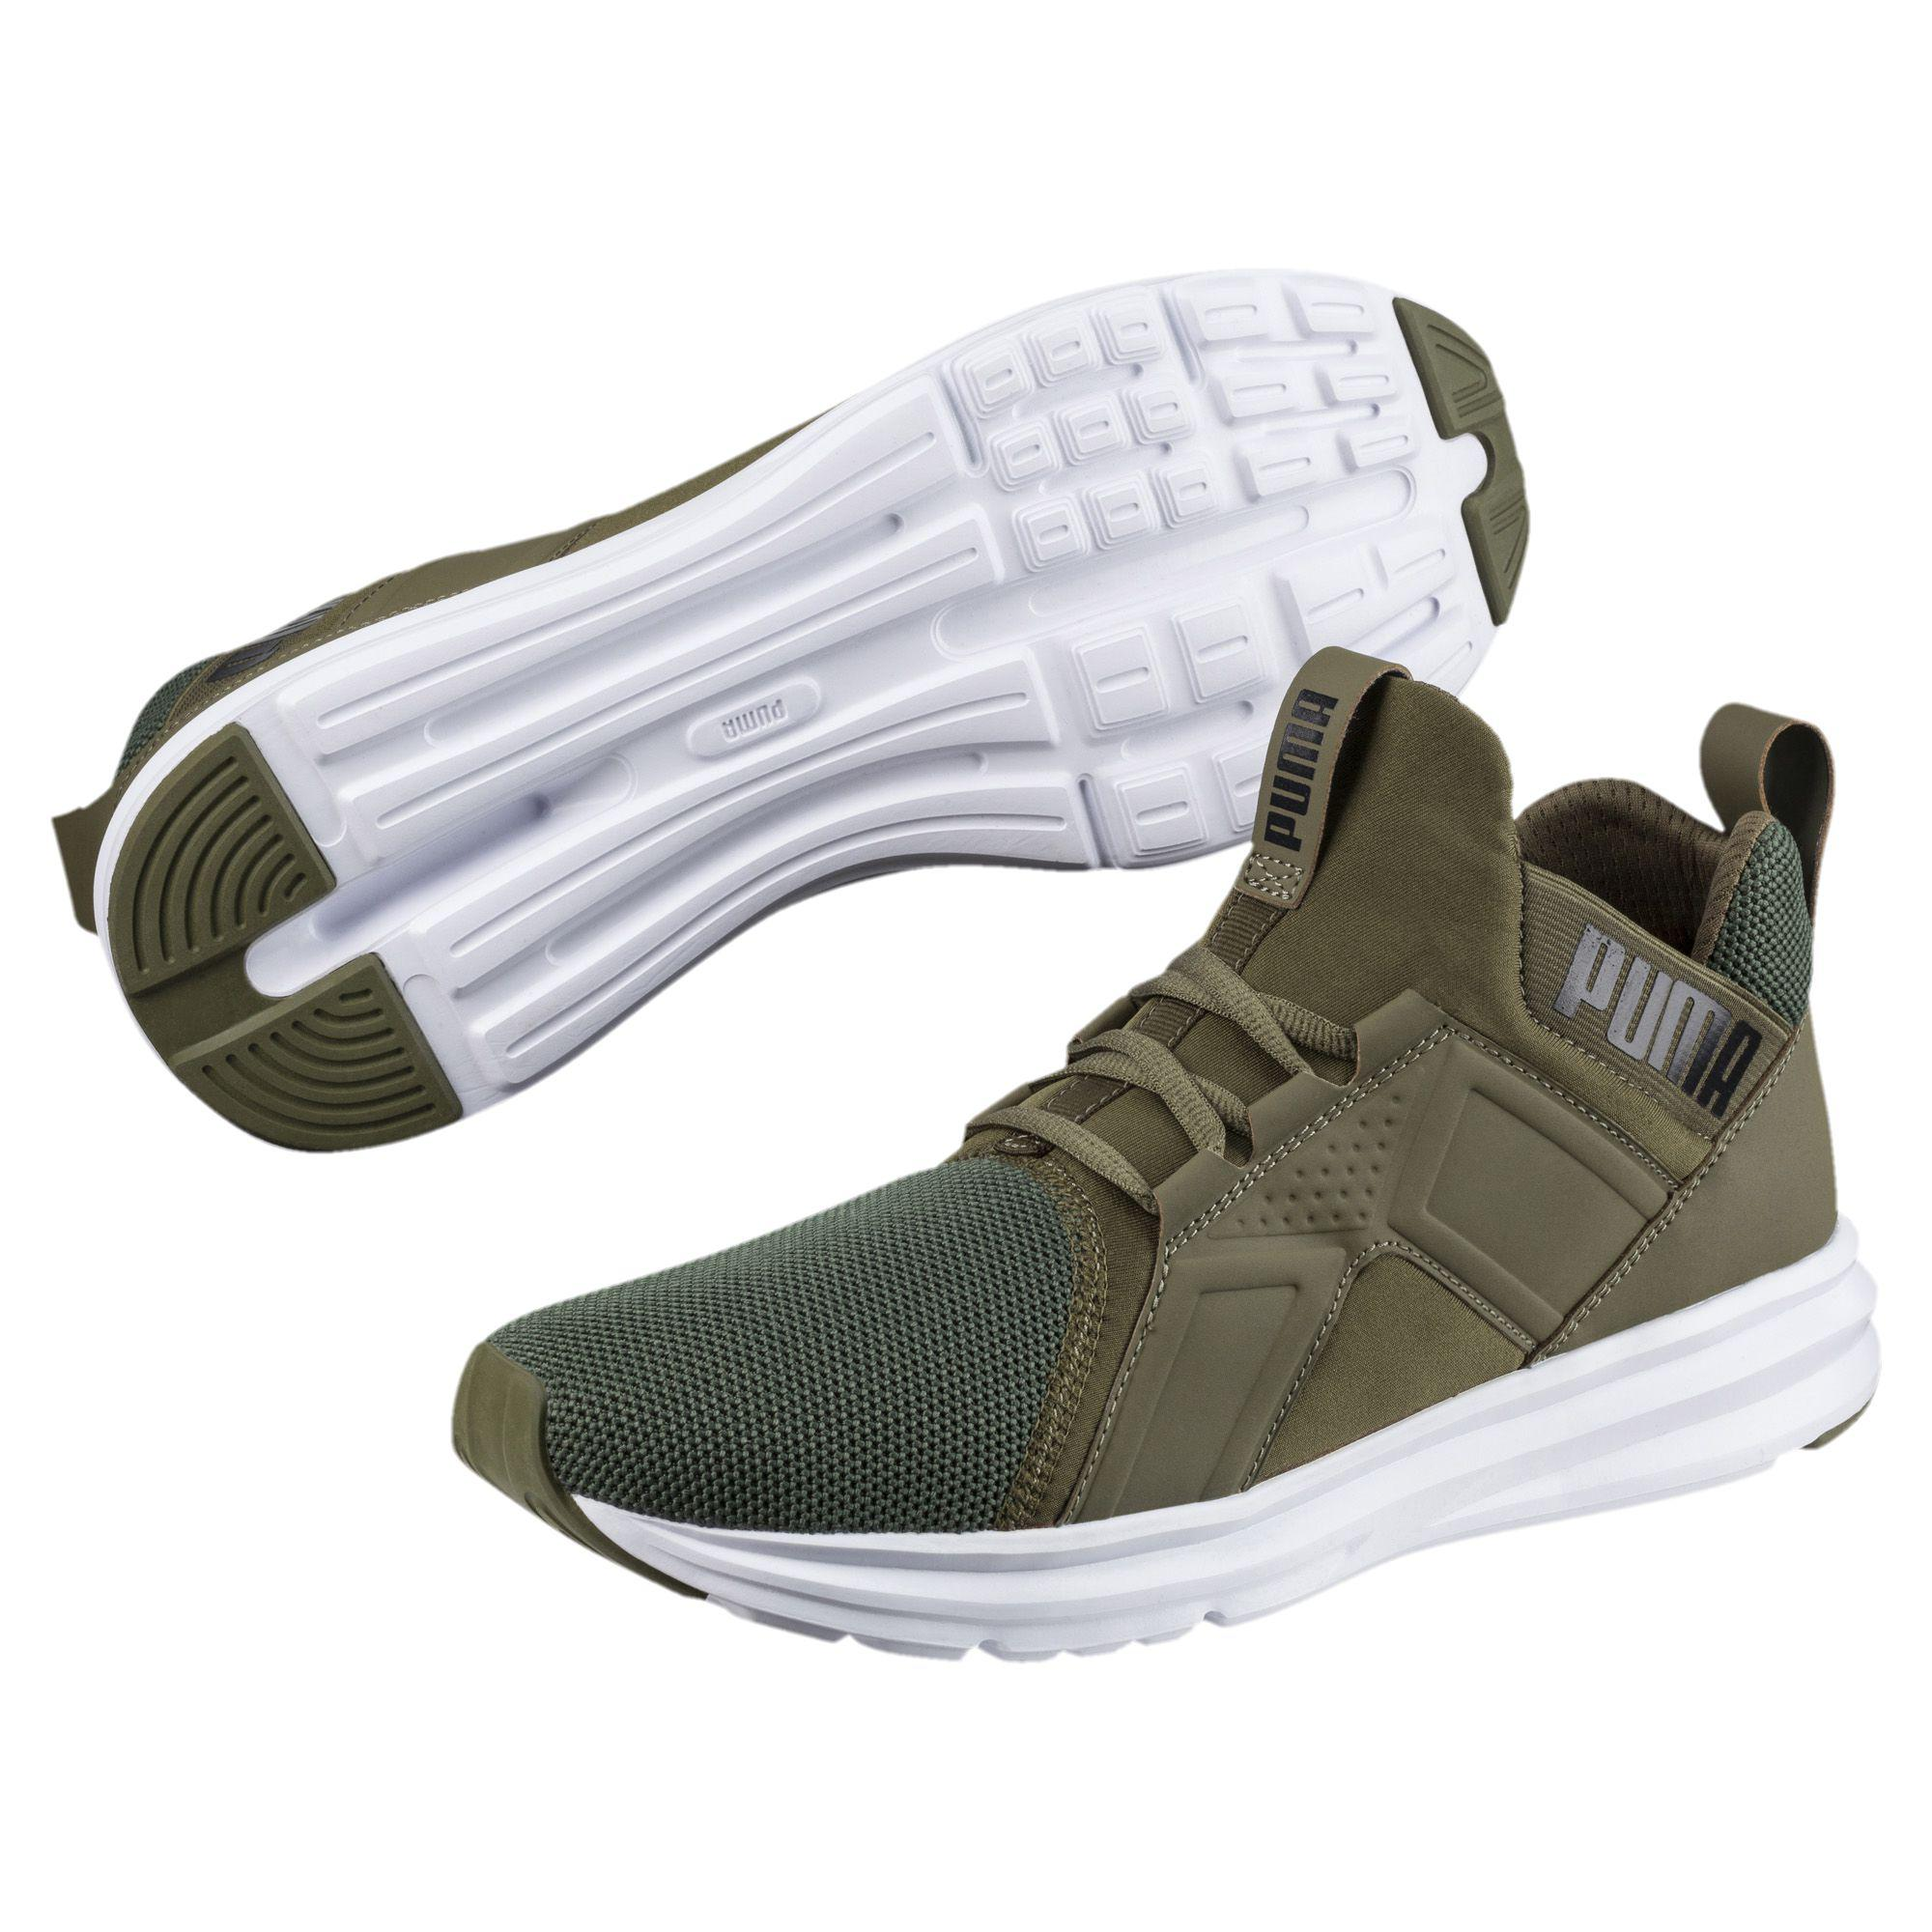 f496597db285 Lyst - PUMA Enzo Mesh Men s Running Shoes in Green for Men